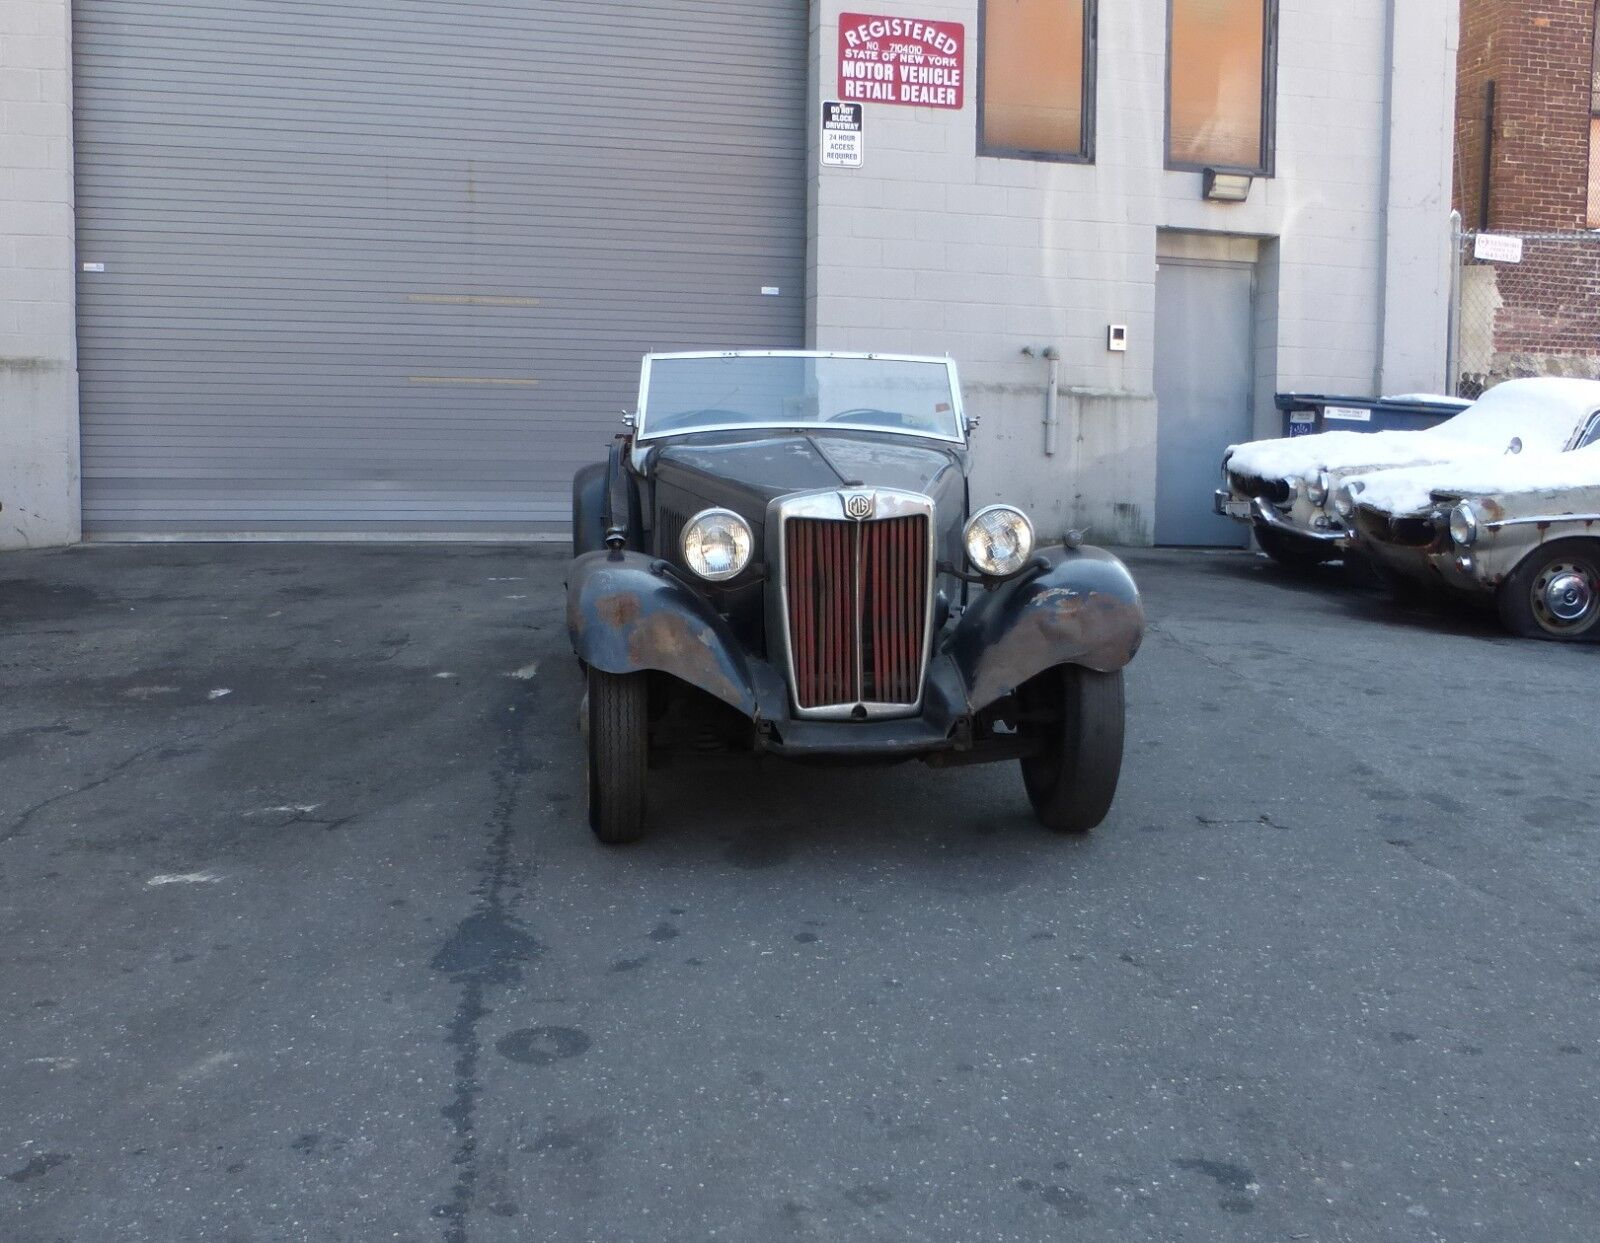 1953 MG T-Series MGTD: 1953 MG TD Complete Car for Restoration Low Reserve